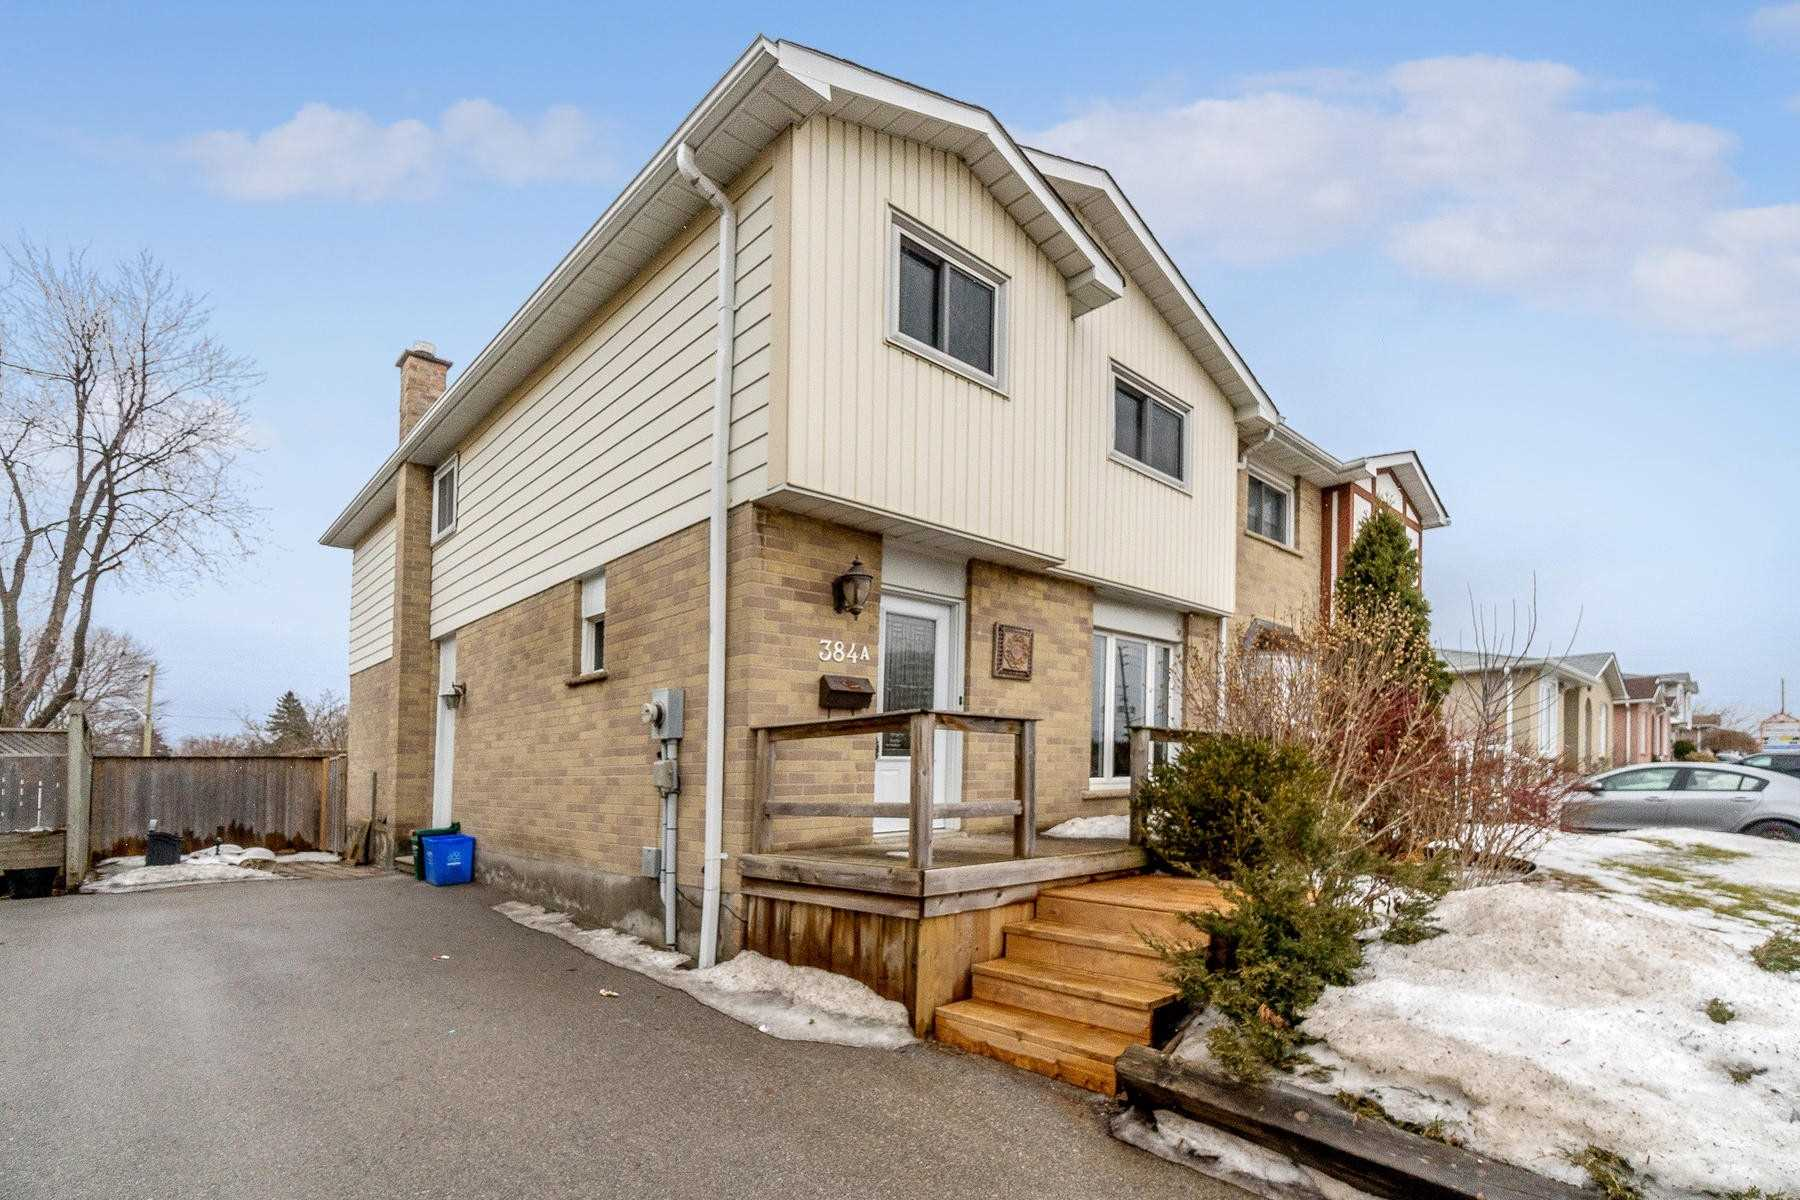 384A Guelph St, Halton Hills, L7G 4B7, 1 Bedroom Bedrooms, ,1 BathroomBathrooms,Detached,For Lease,Guelph,W4722819